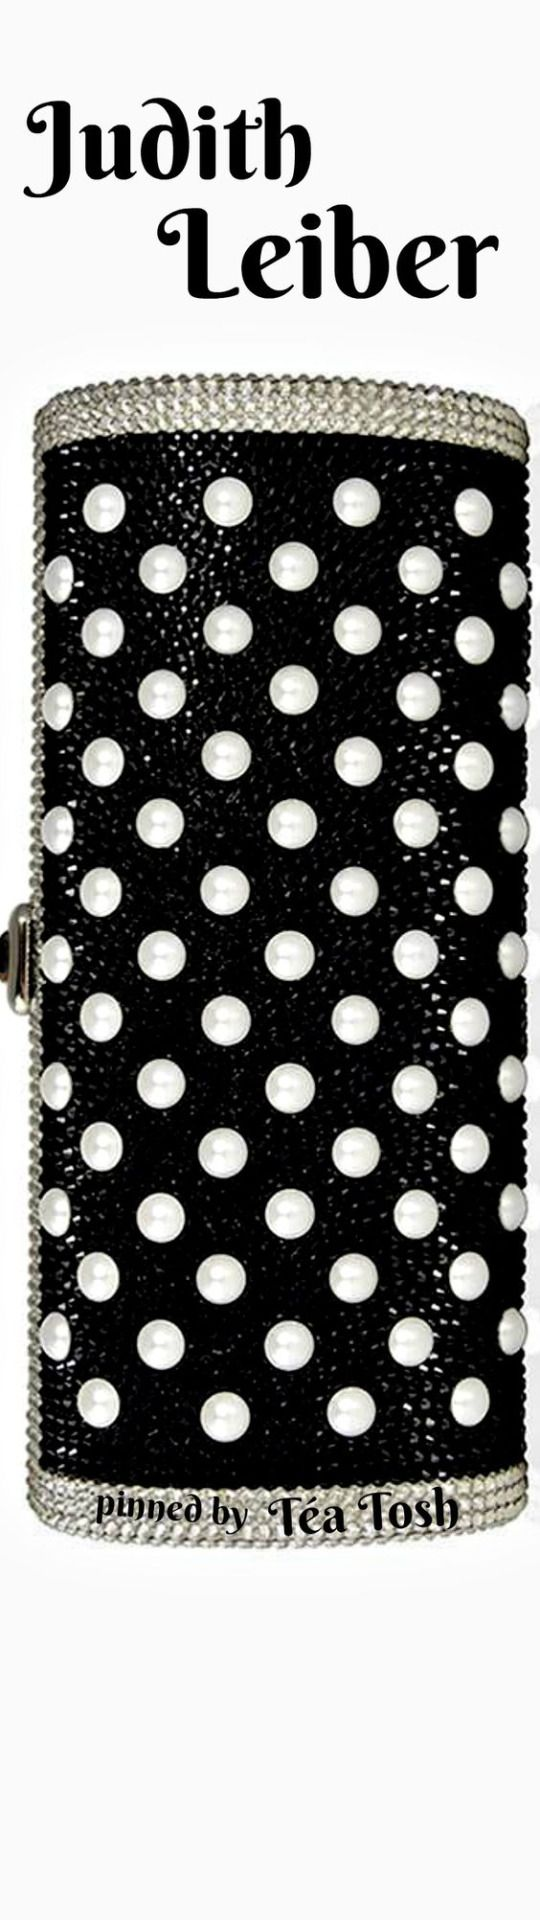 ❇Téa Tosh❇ Judith Leiber, Couture, Cylinder Beaded East-West Clutch Bag